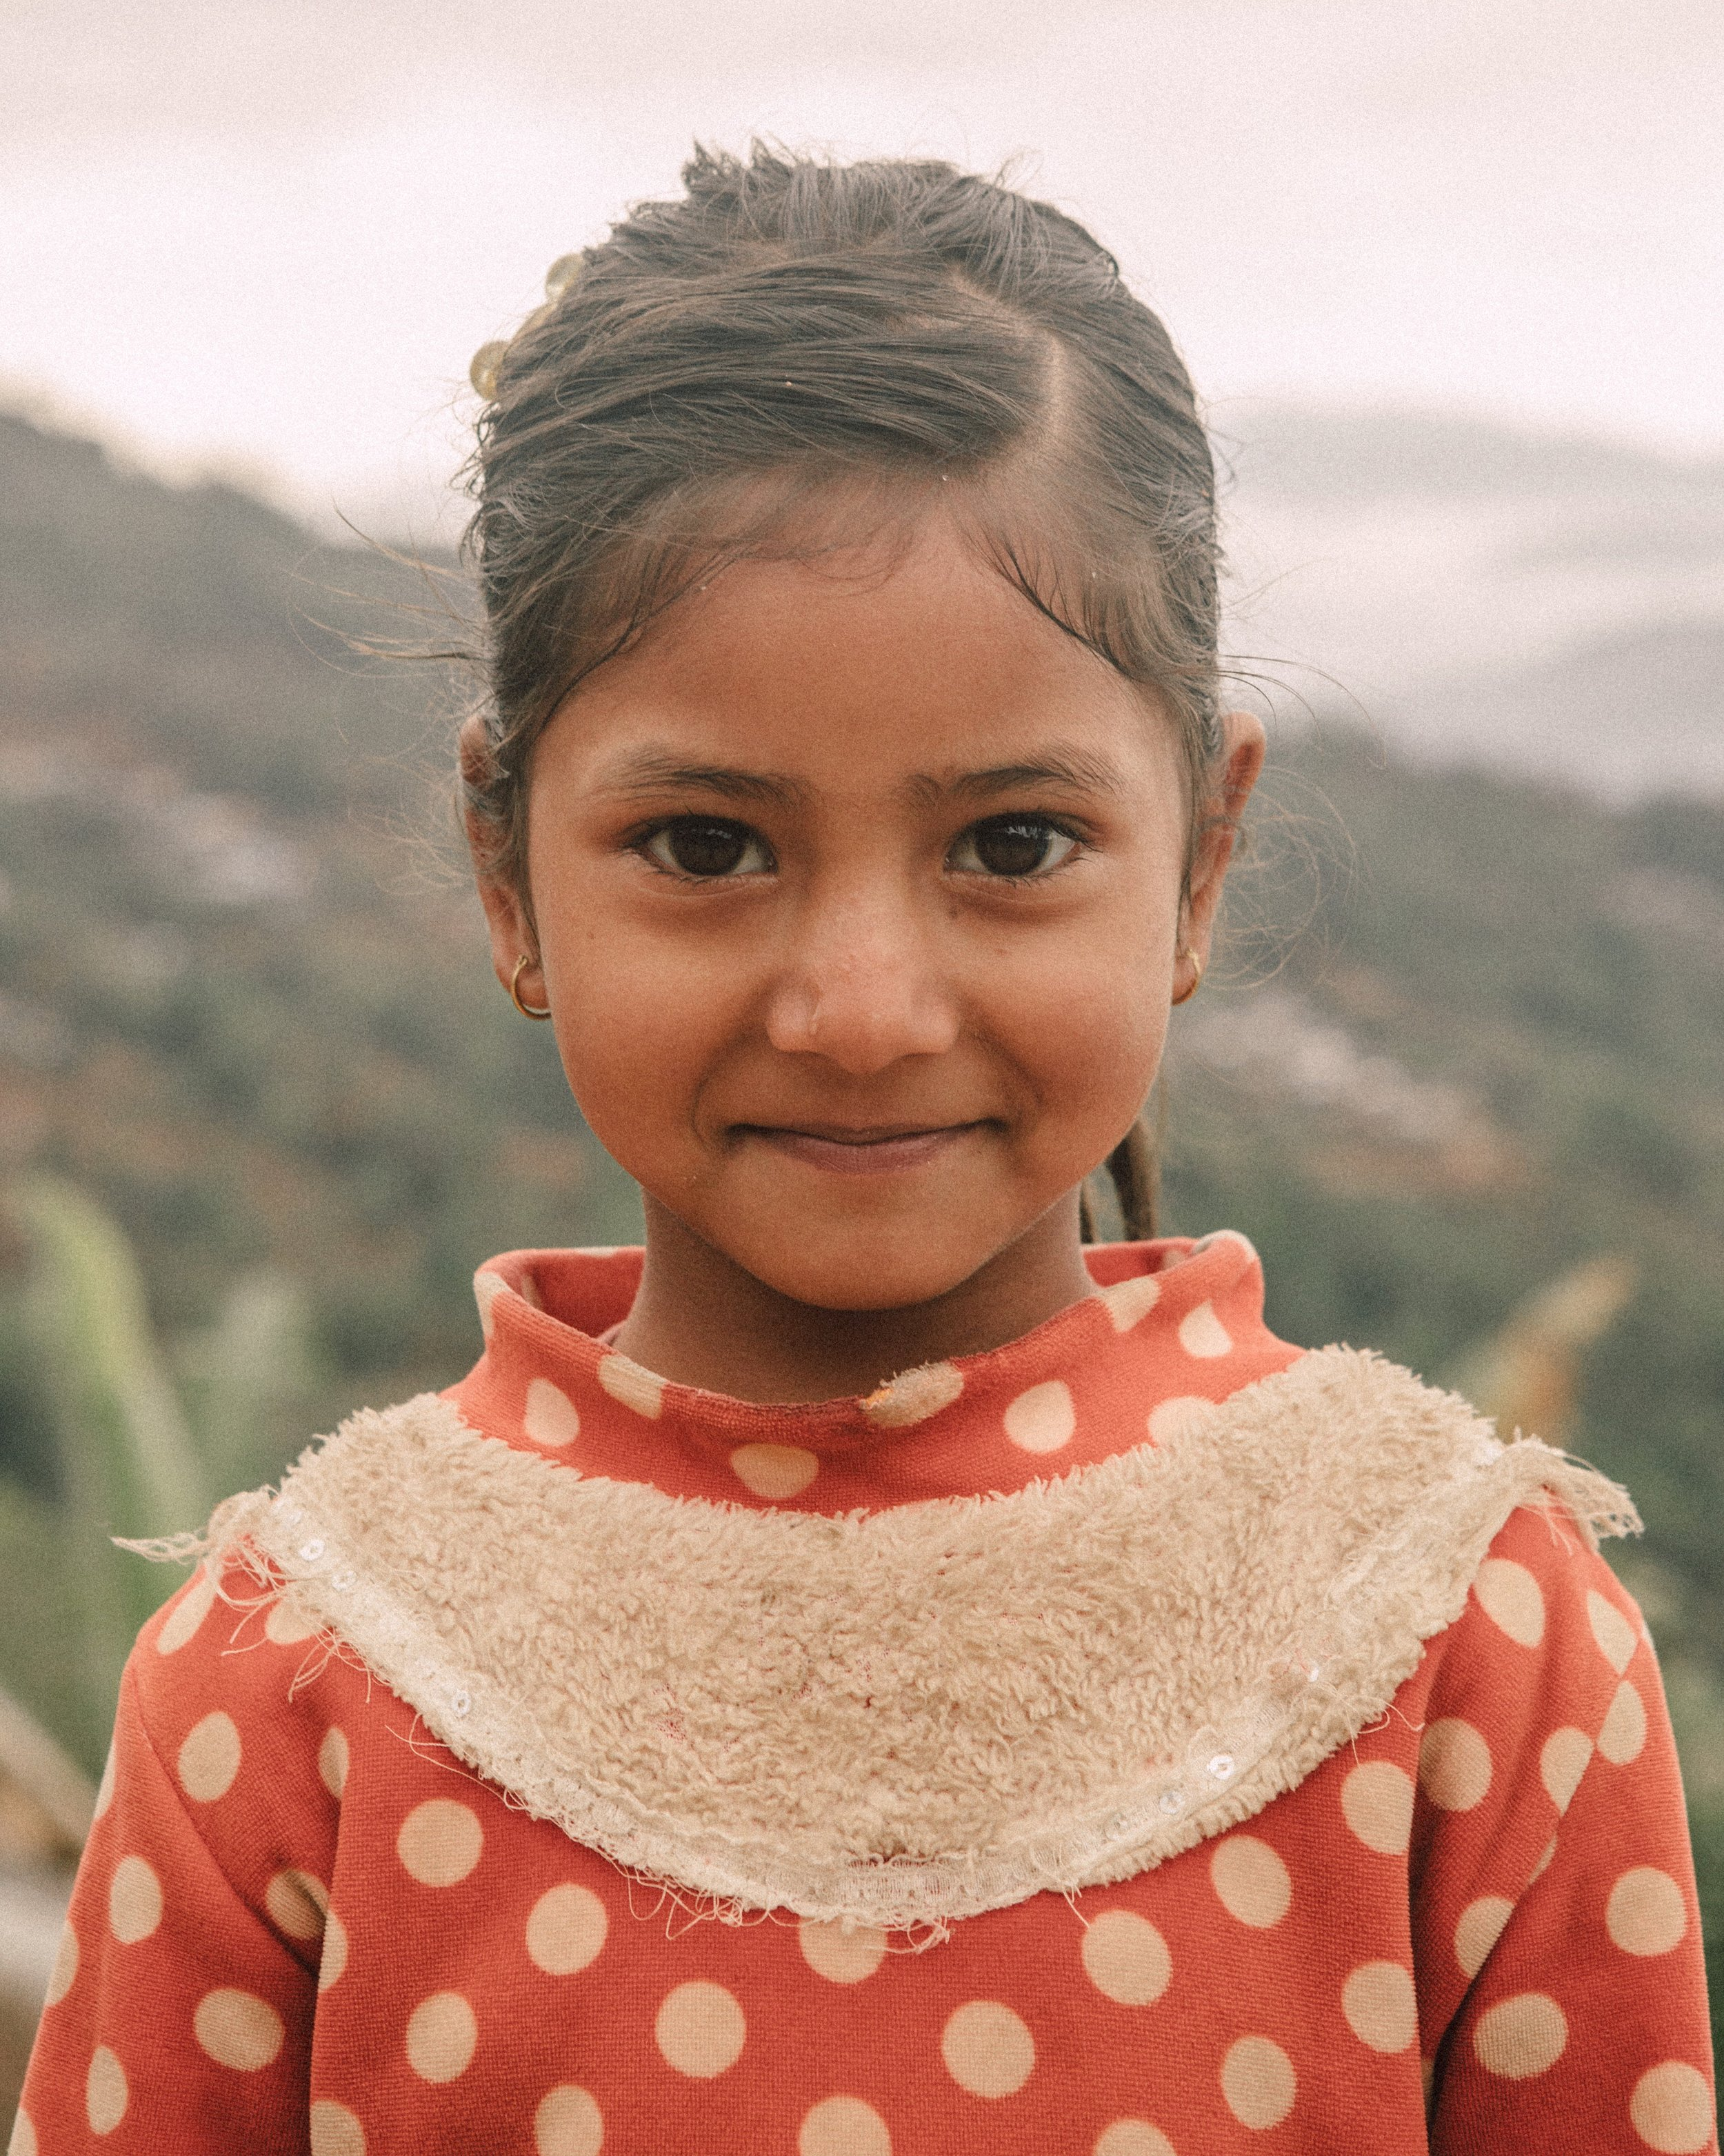 - A young Nepali girl takes a break from running down a mountain in a rural village to pose for my camera.